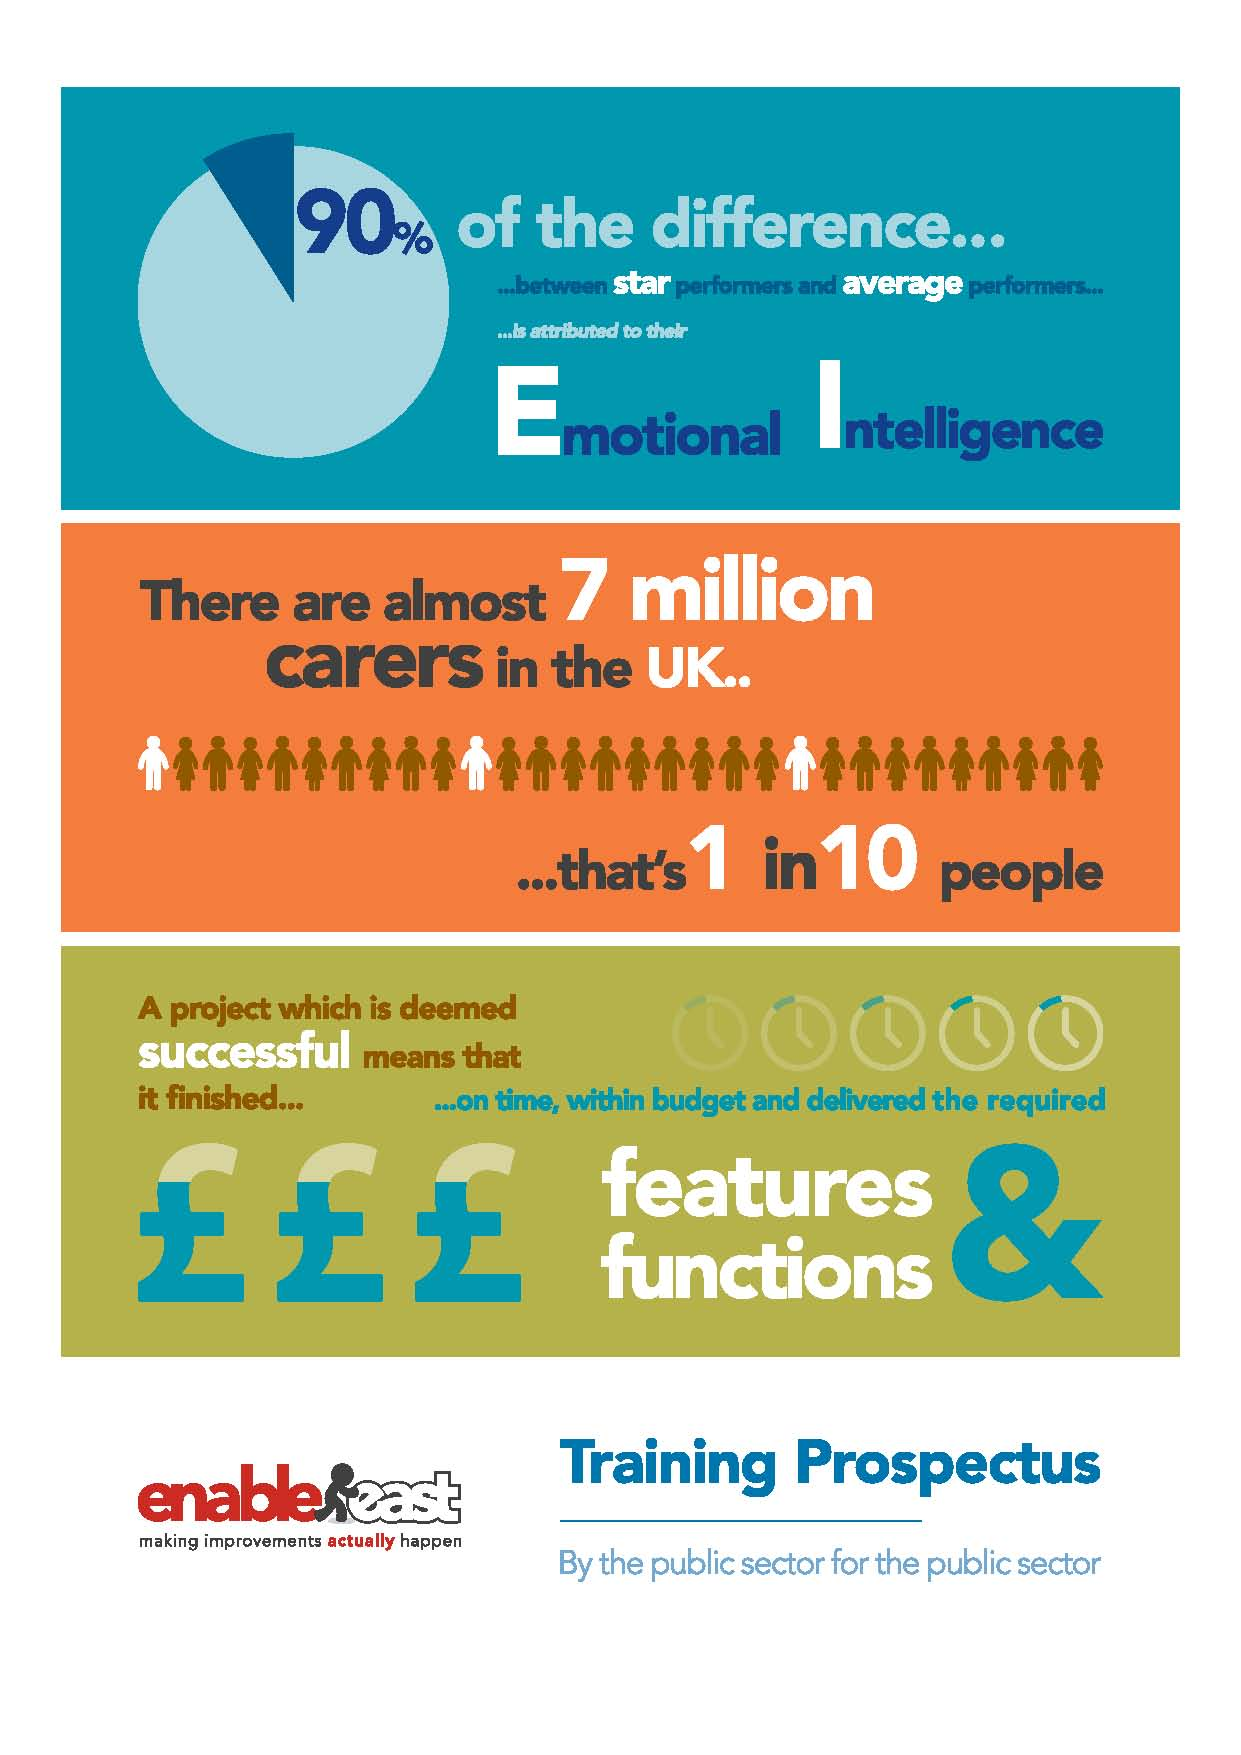 Download our EE Training Prospectus